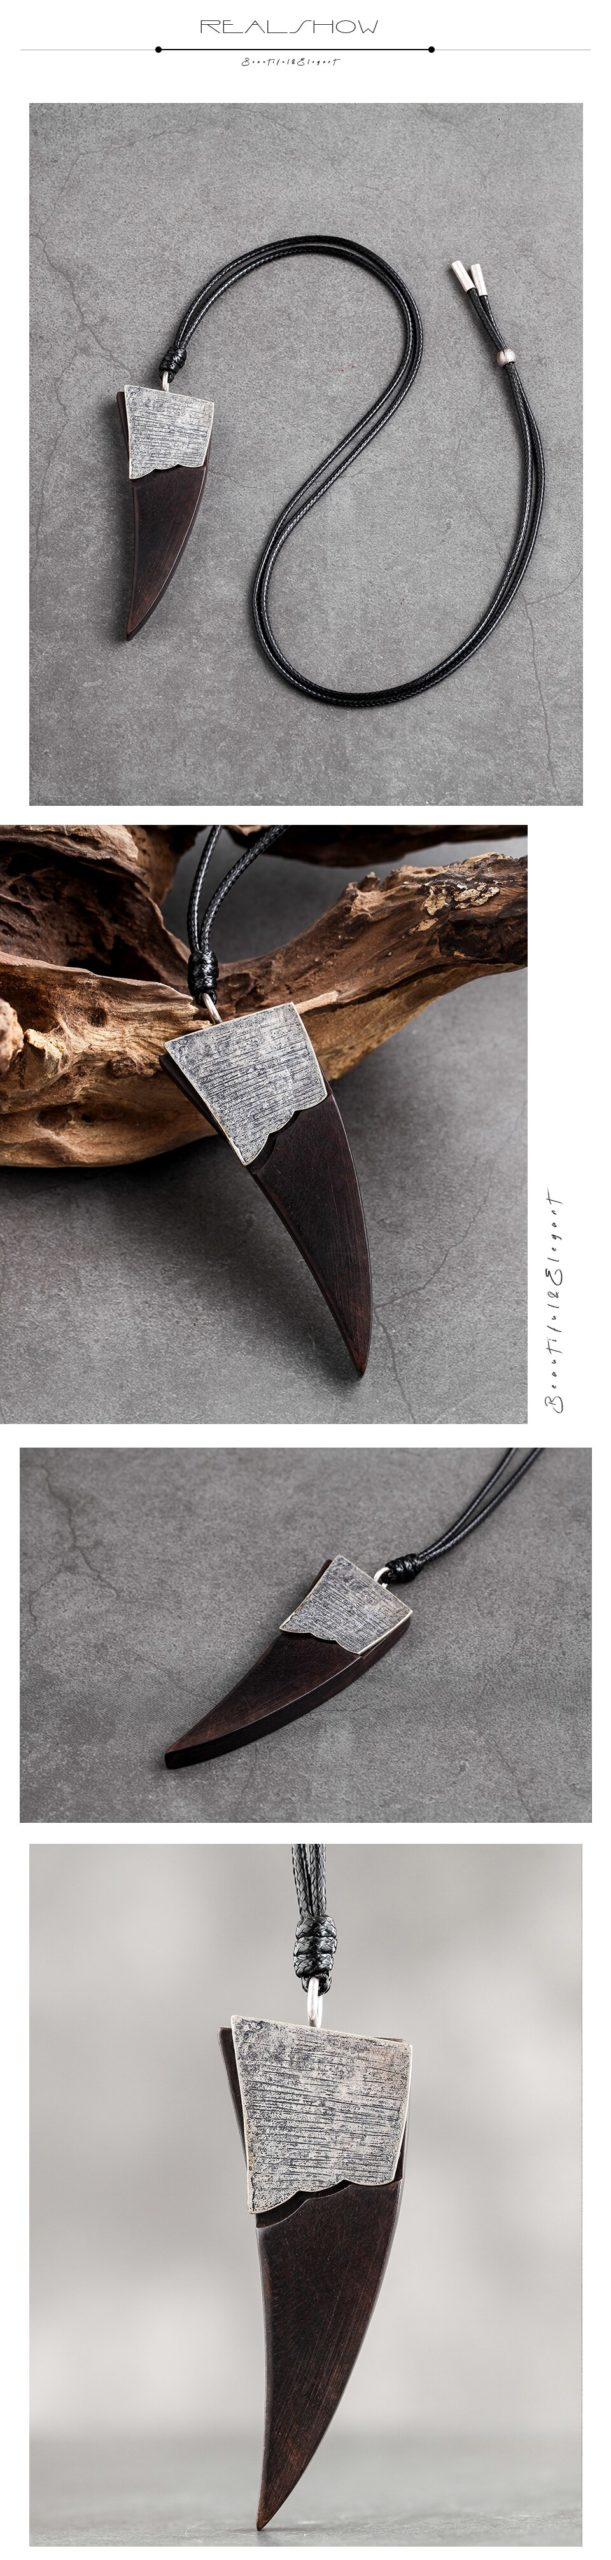 Geometric Triangle Pendant&Necklaces Vintage Jewelry Chain Sandalwood Wooden Necklace New Popular Decoration Gifts For Friends